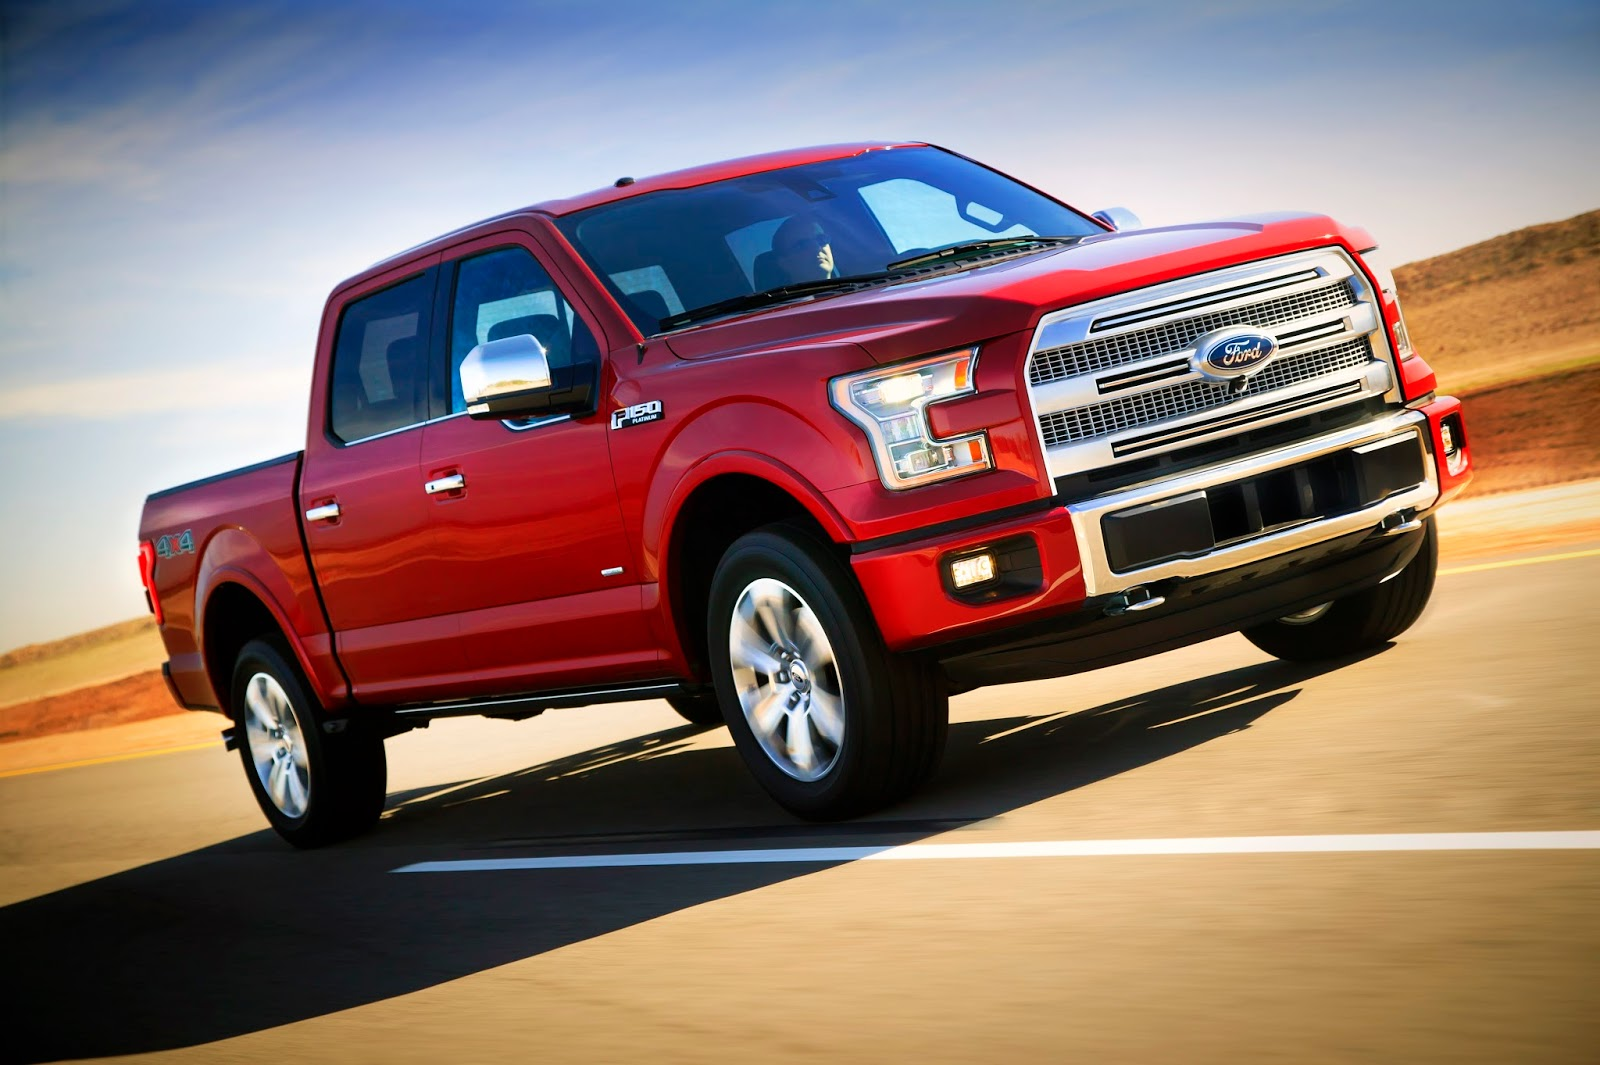 Hilbish Ford Blog: Ford F-150 Tops 2014 American-Made Index List